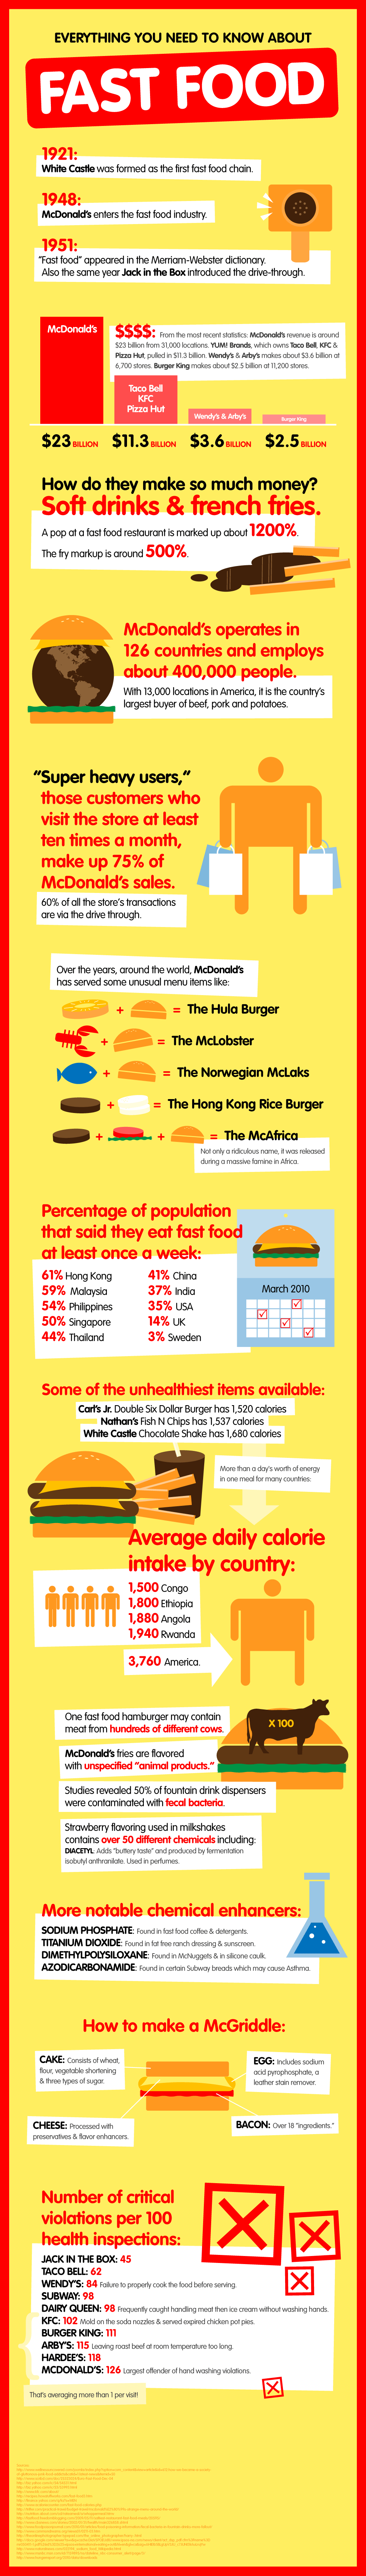 Everything You Need to Know About Fast Food Facts